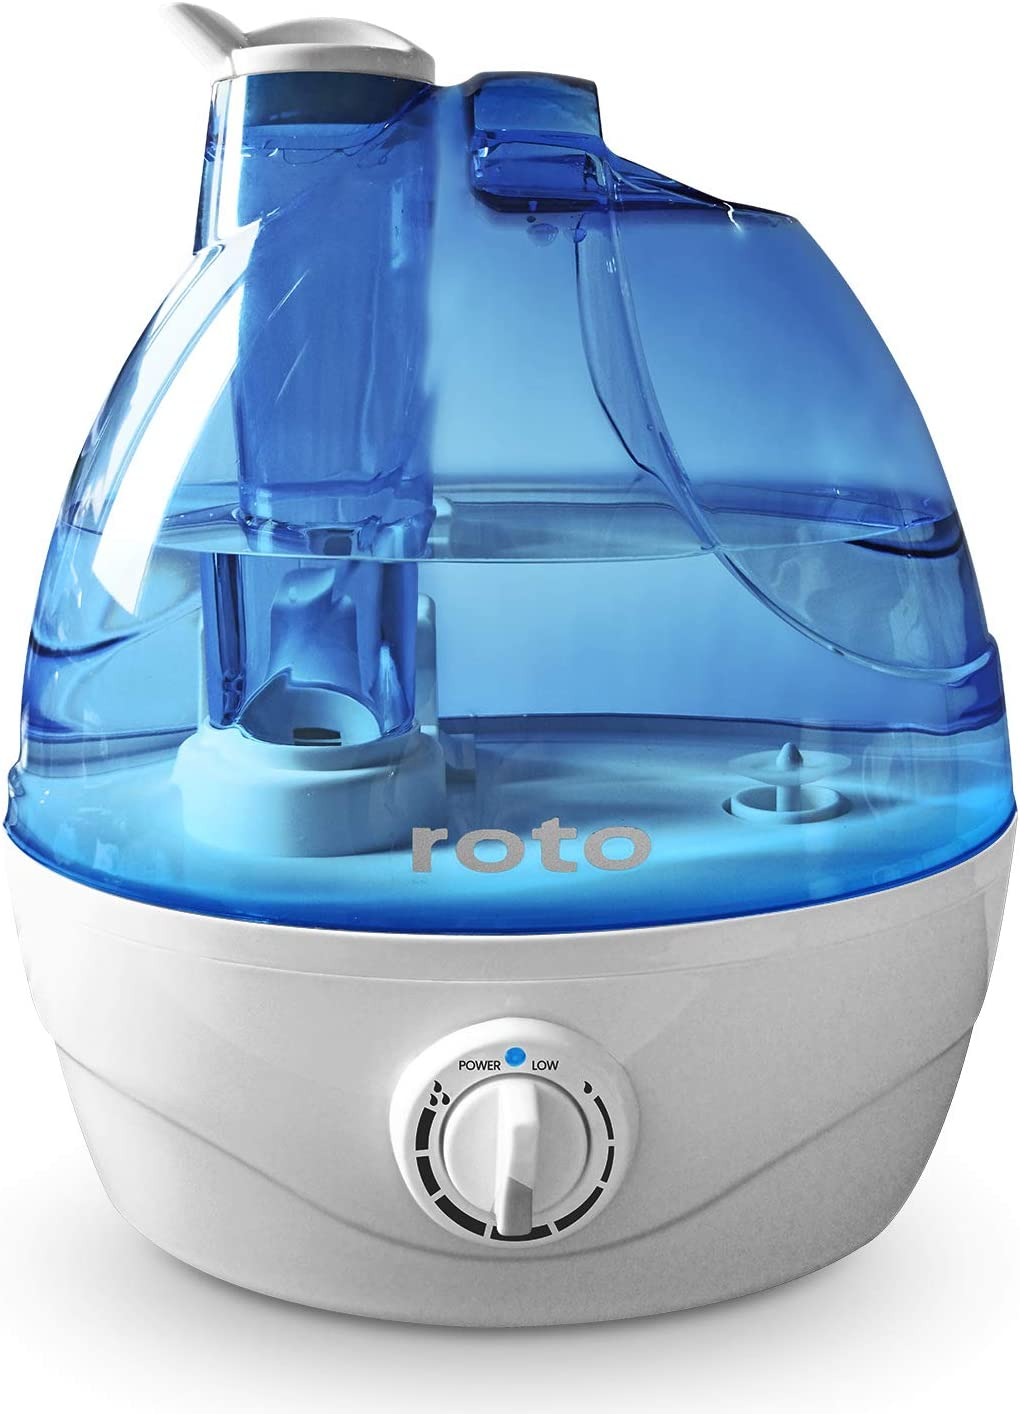 Roto All items free shipping Outlet ☆ Free Shipping Cool Mist Humidifiers 2L Bedroom Air for Home